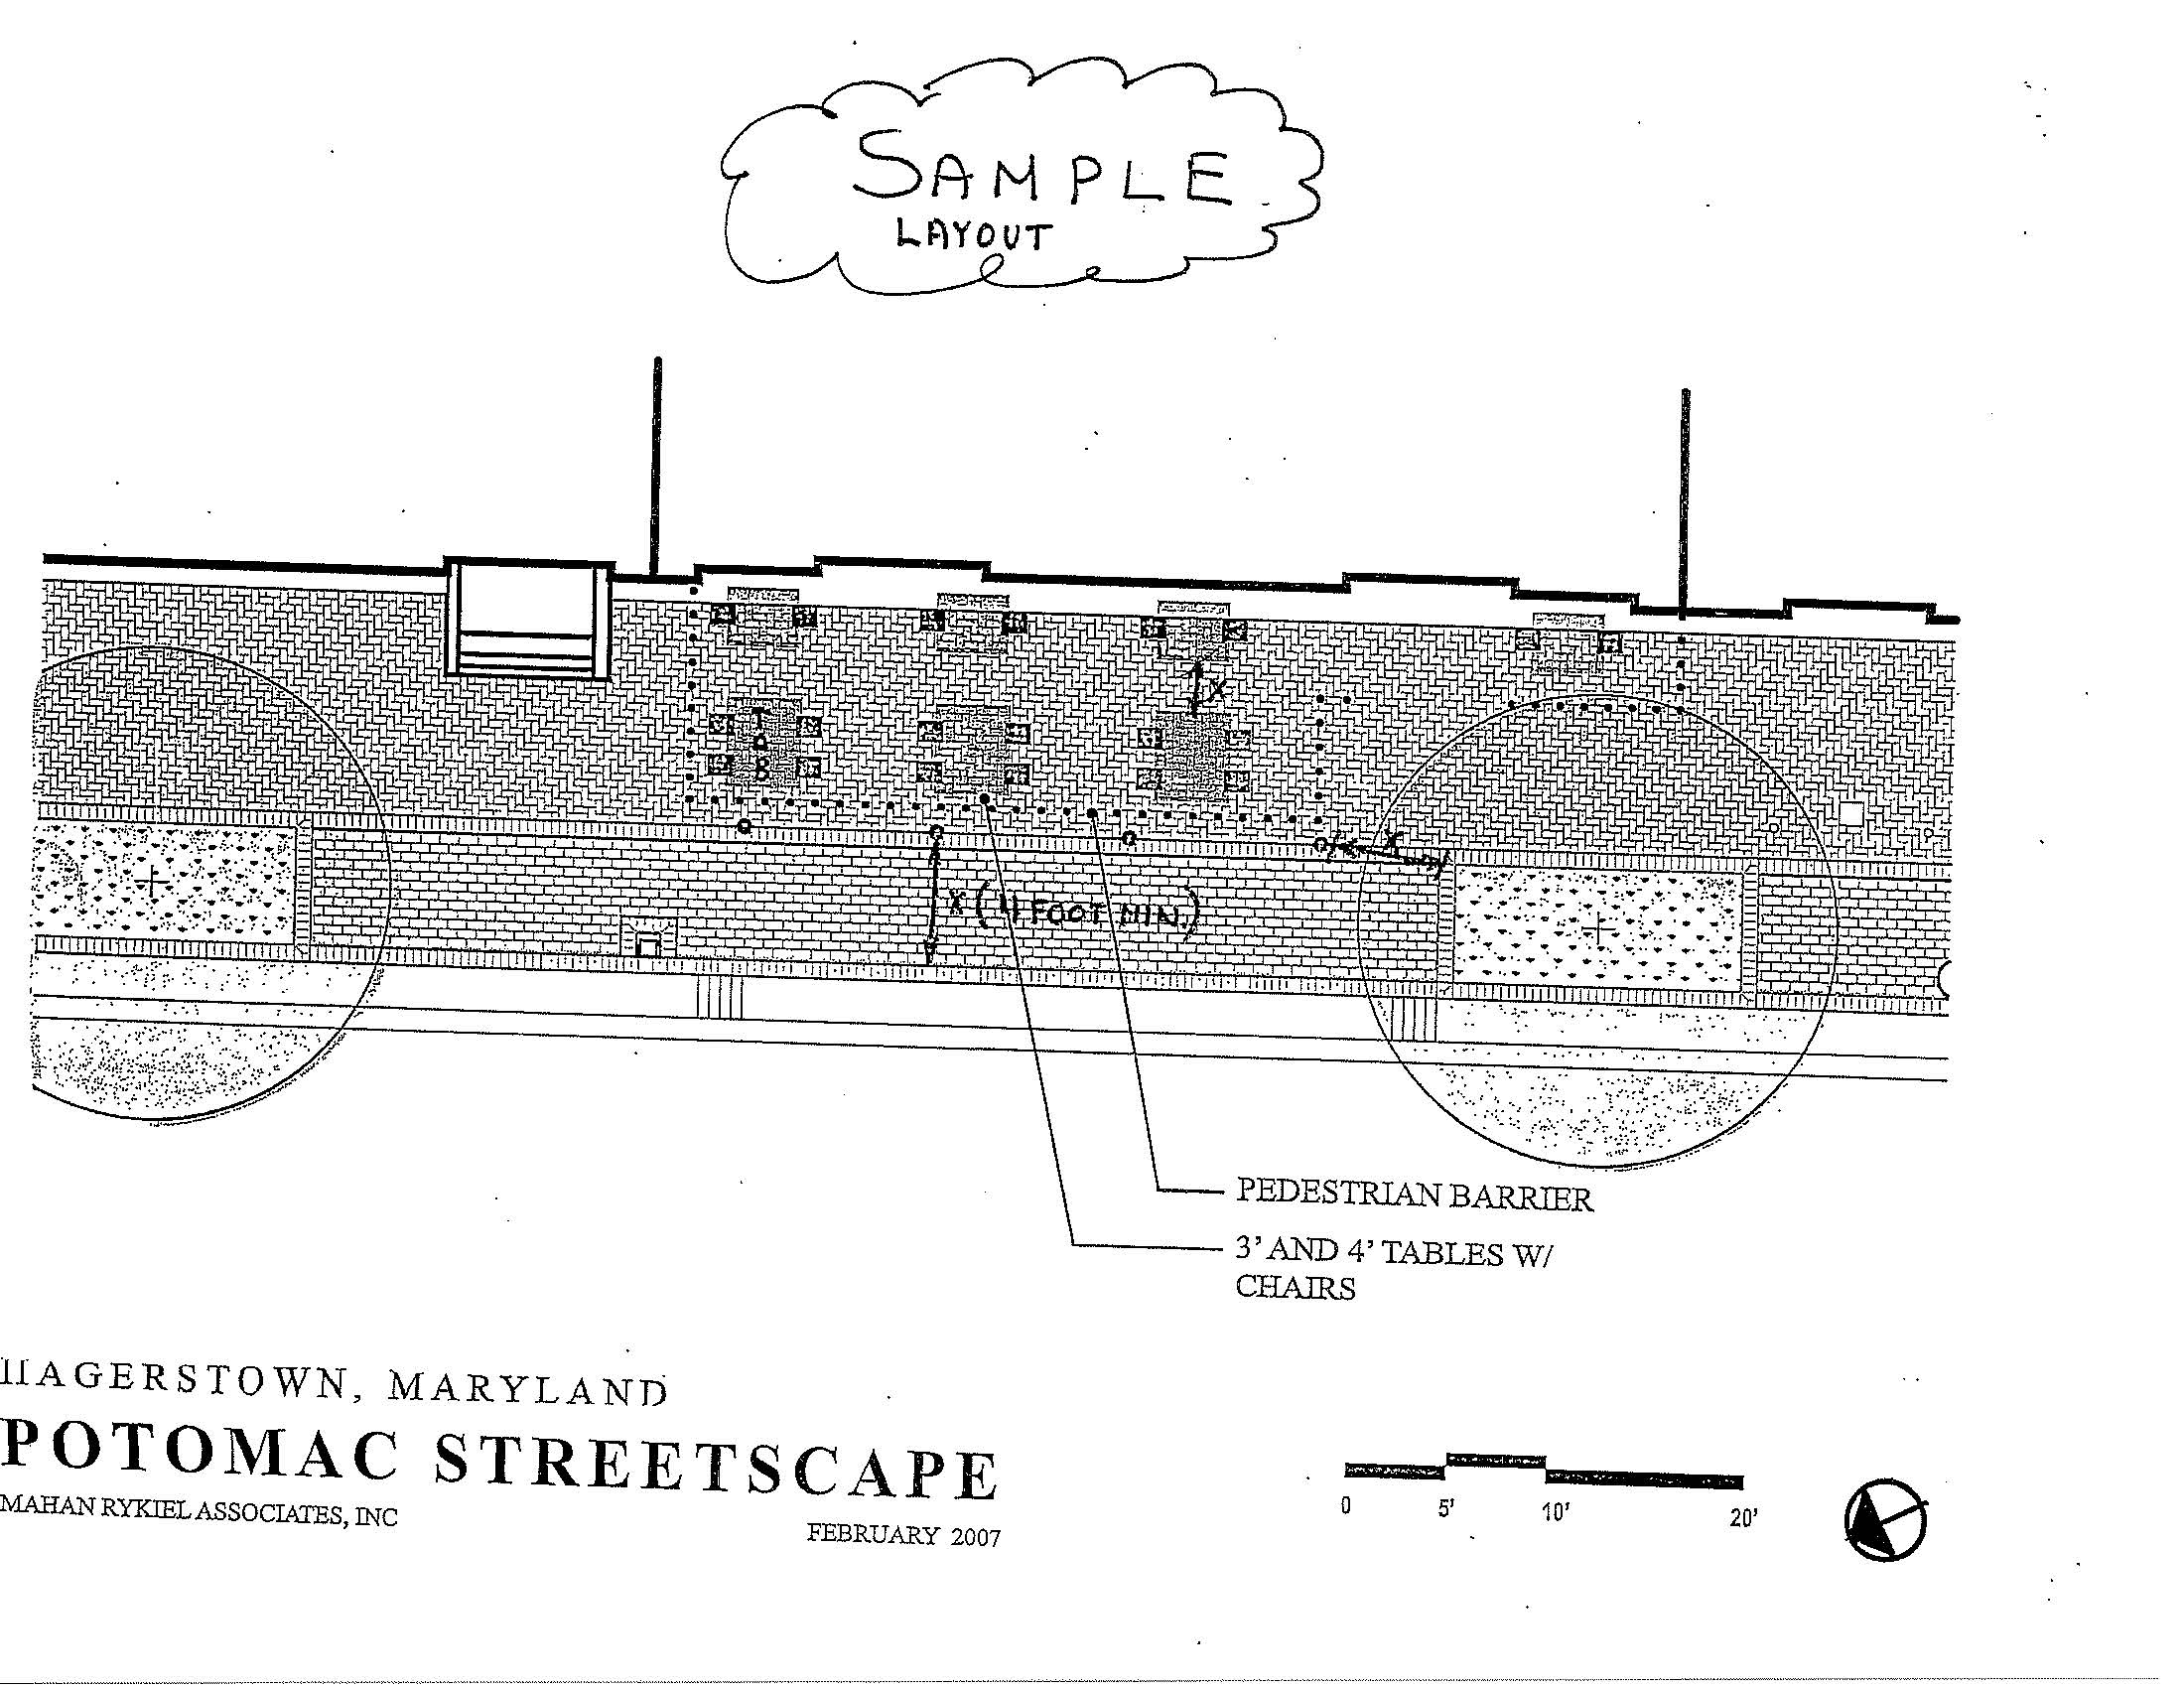 Sidewalk Cafe Site Seating Plan